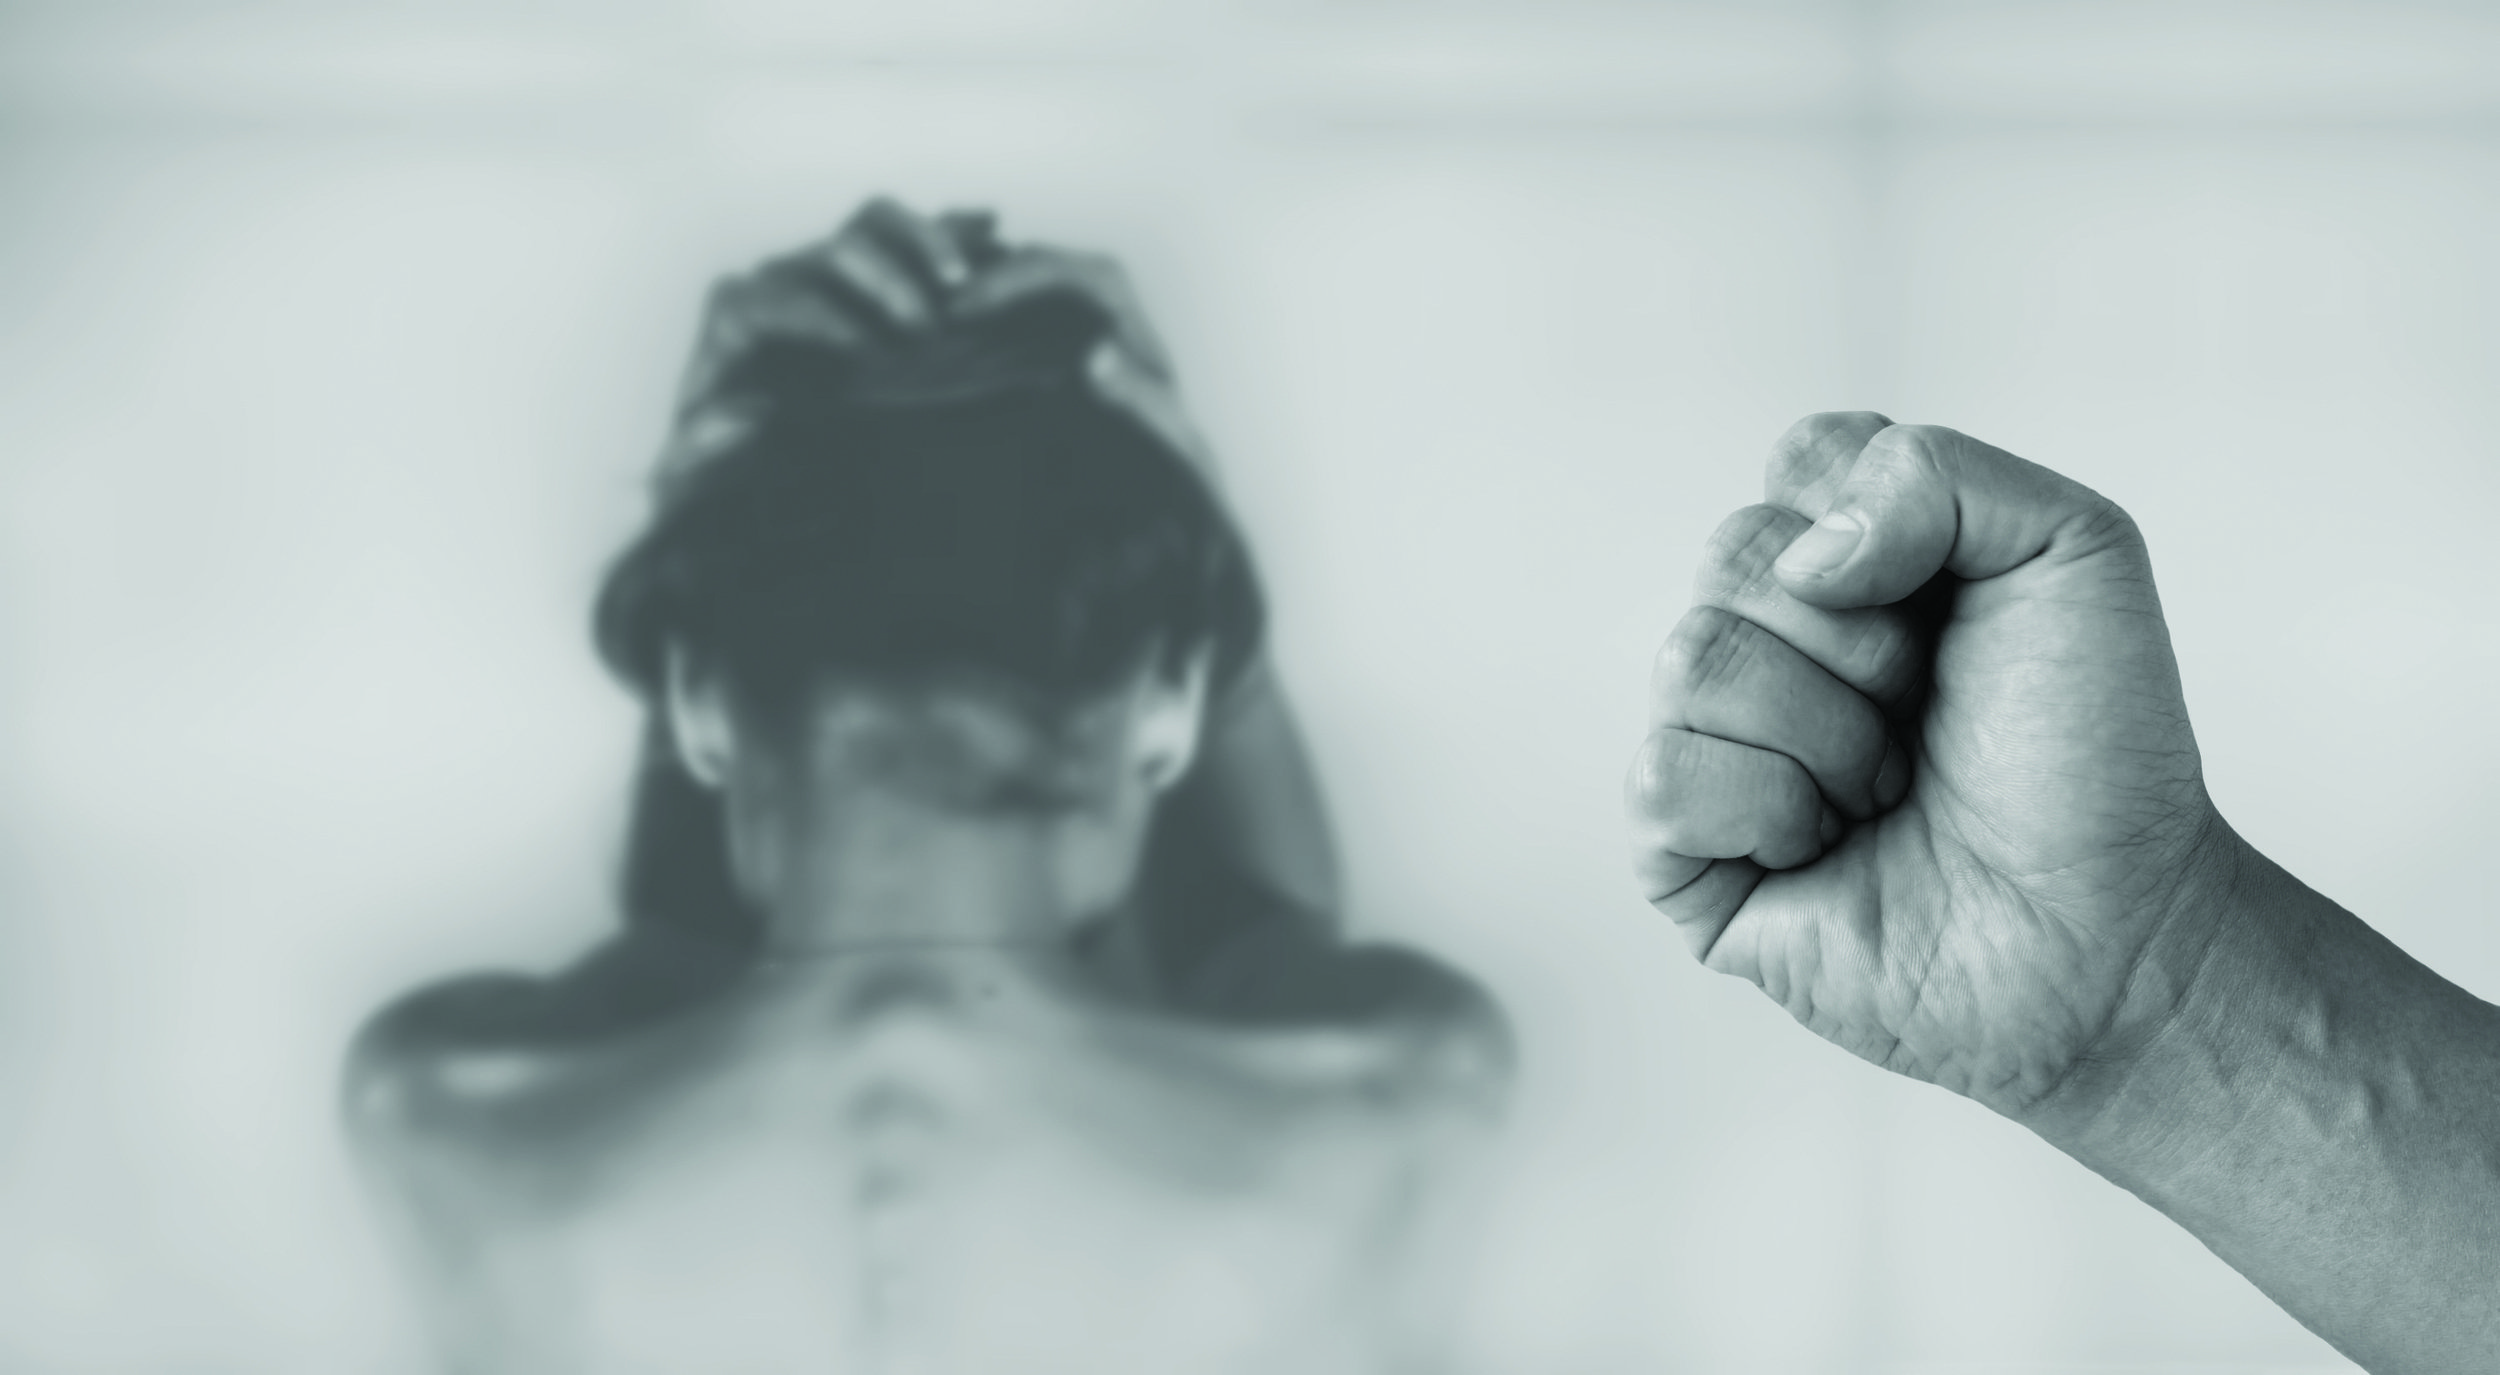 Domestic violence incidents spike during pandemic thumbnail